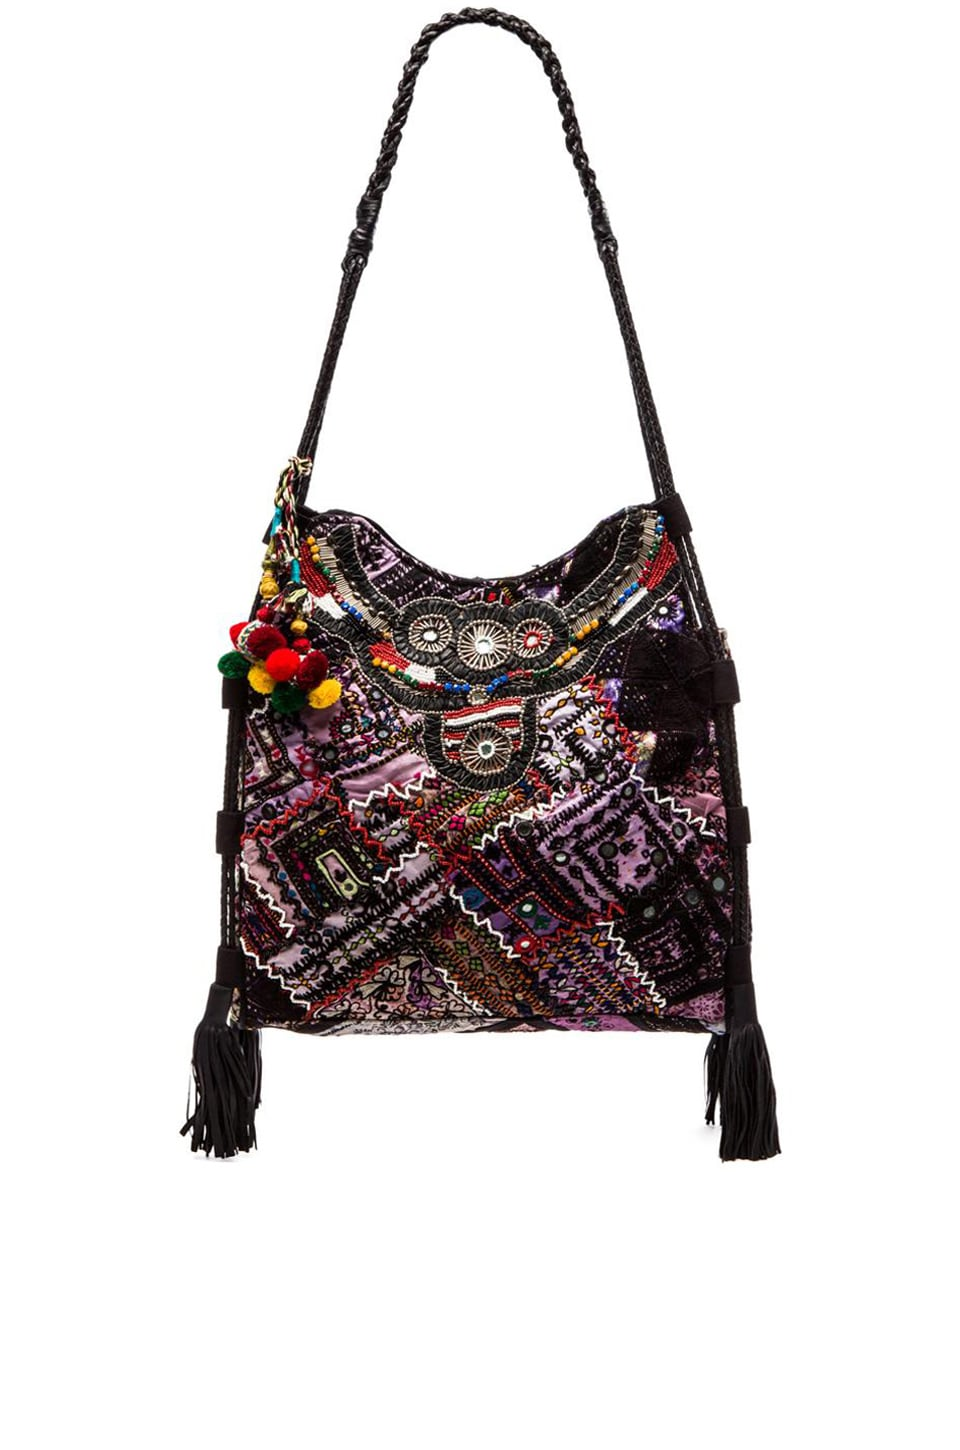 Gypsy 05 Ada Tote Bag in Black